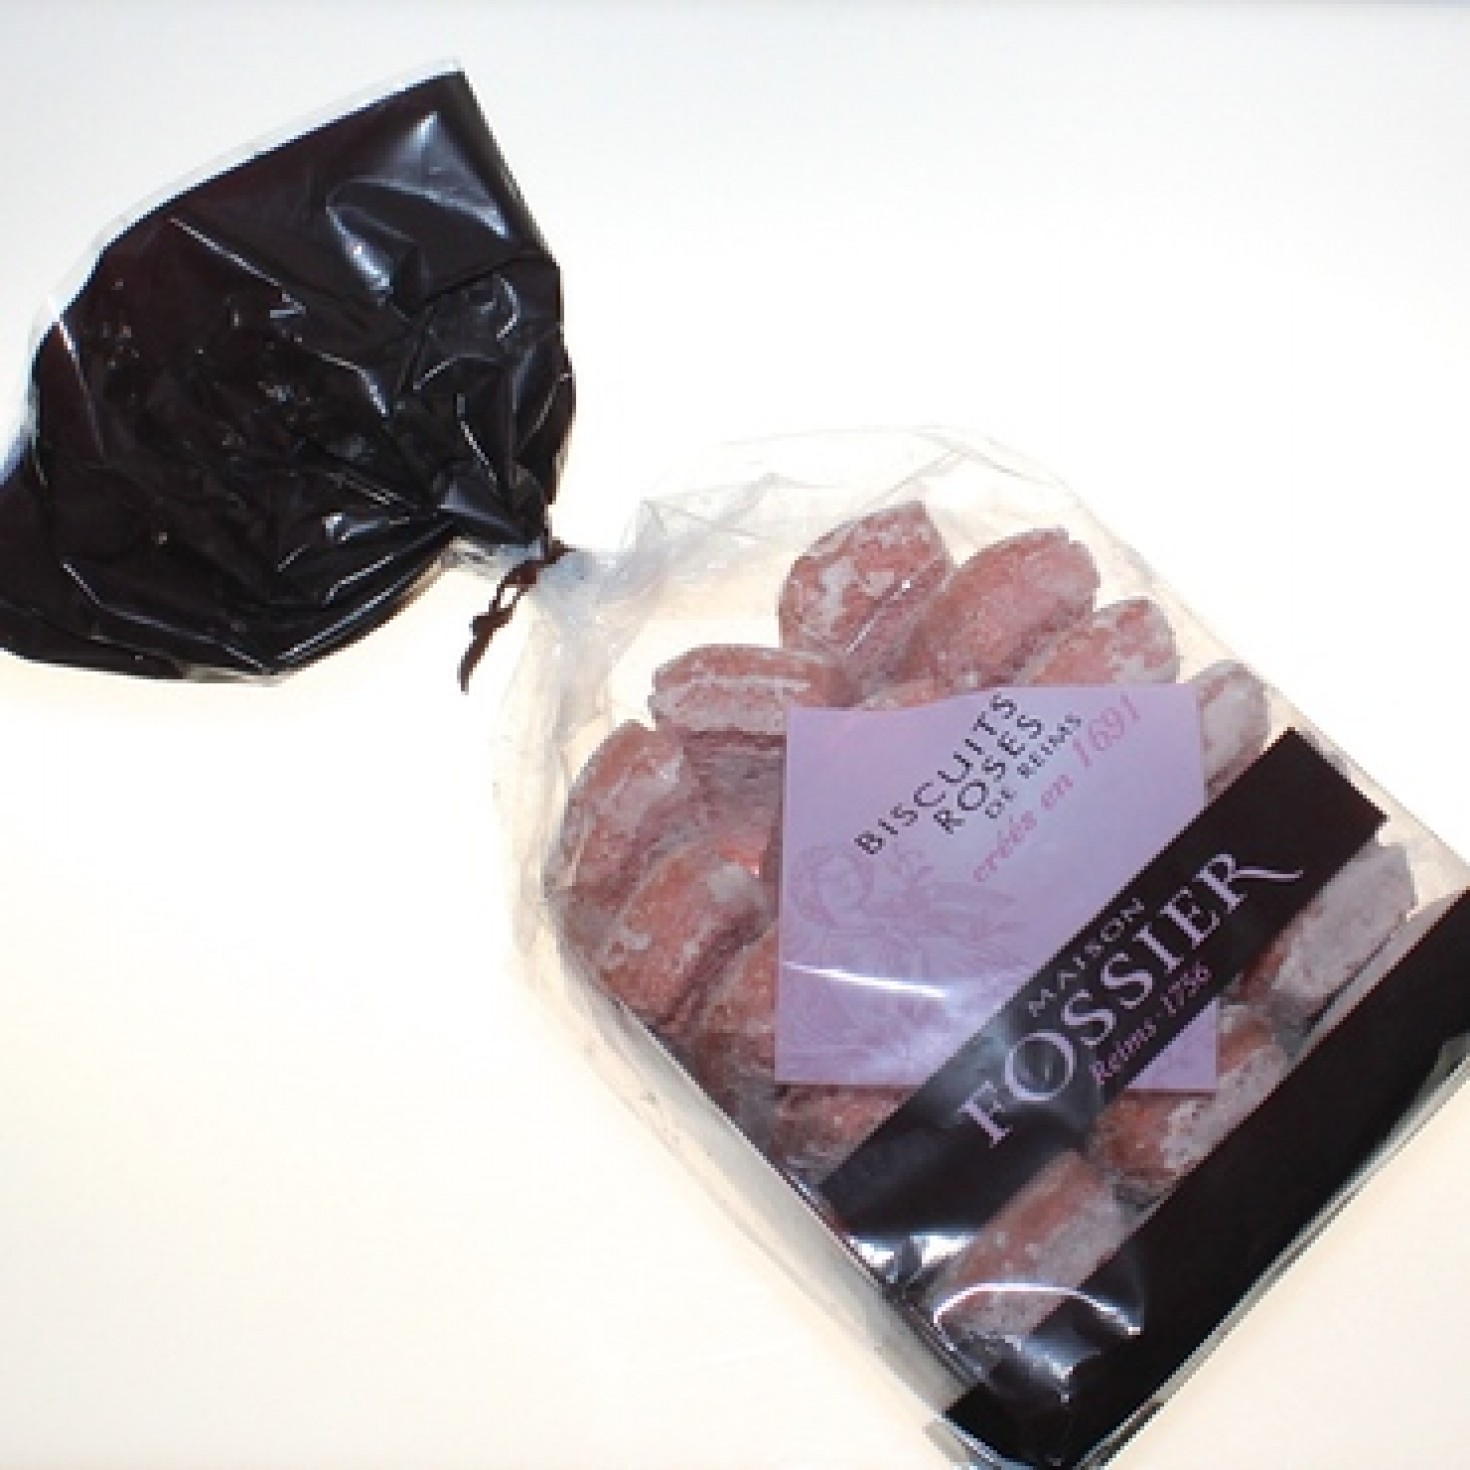 Maison Fossier Biscuits Roses De Reims French Pink Champagne Sachet By Brand